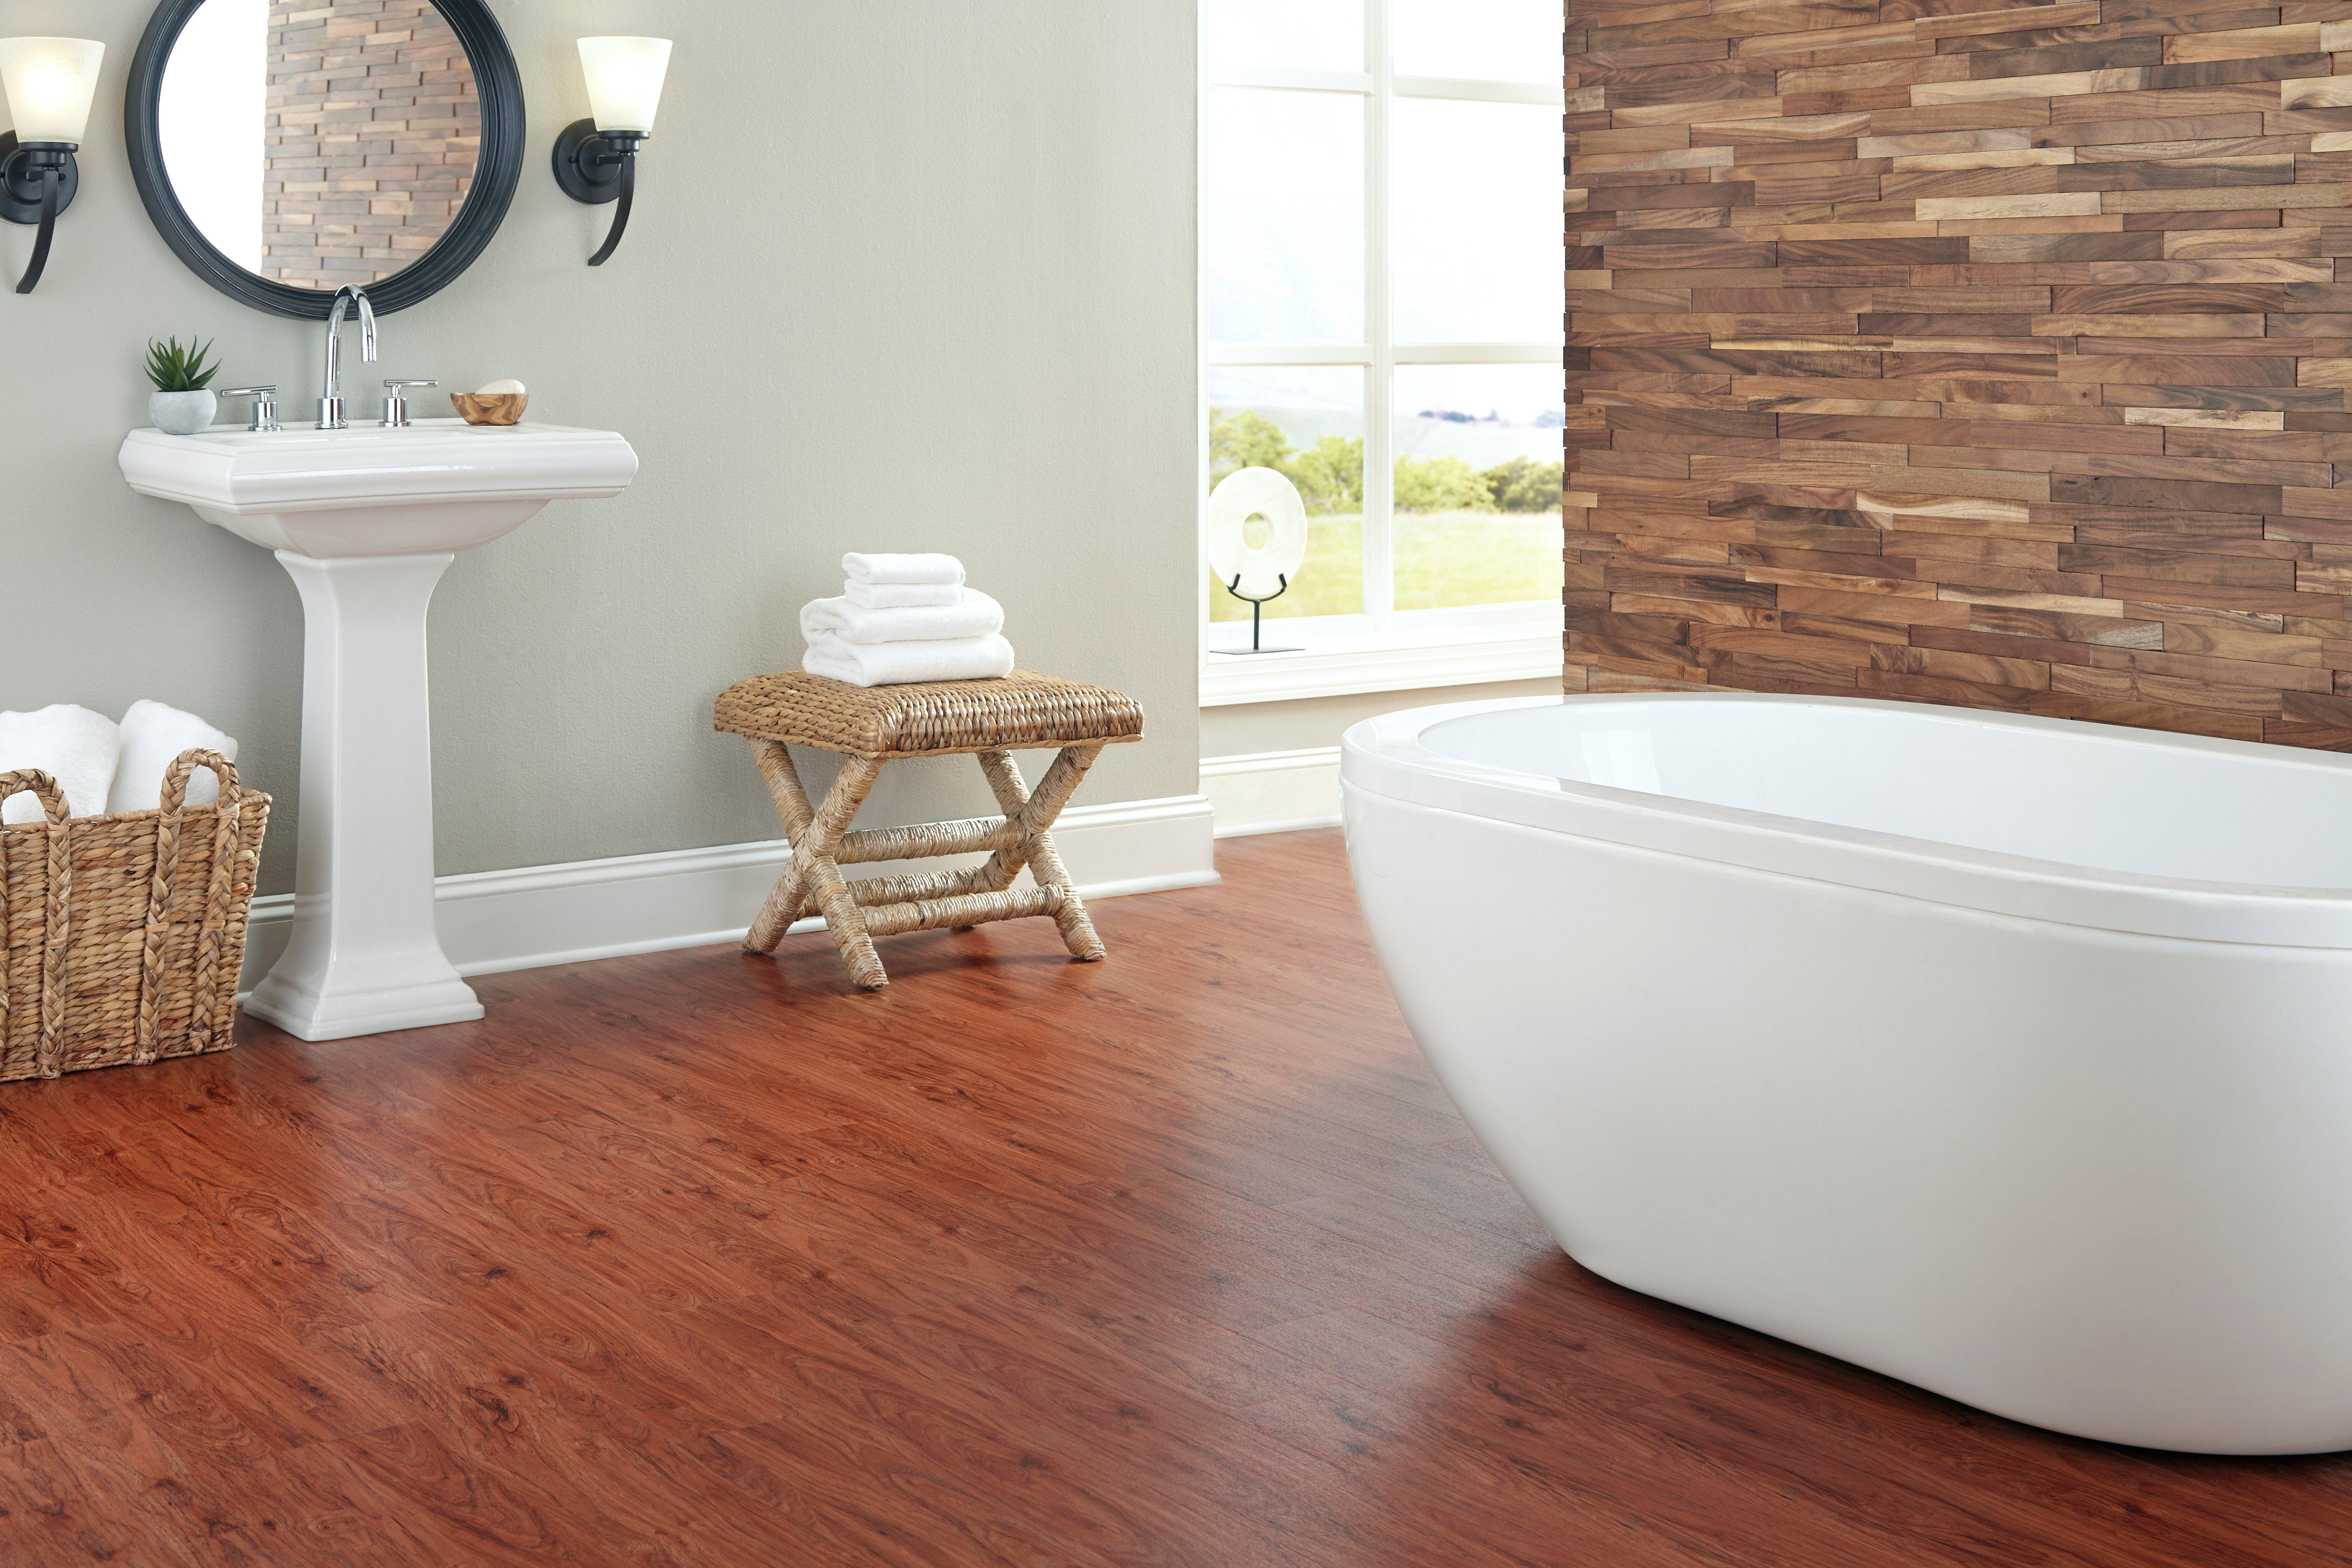 ... Rooms, Bathroom 1: Hickory Luxury Vinyl Plank Bathroom Floor Room ...